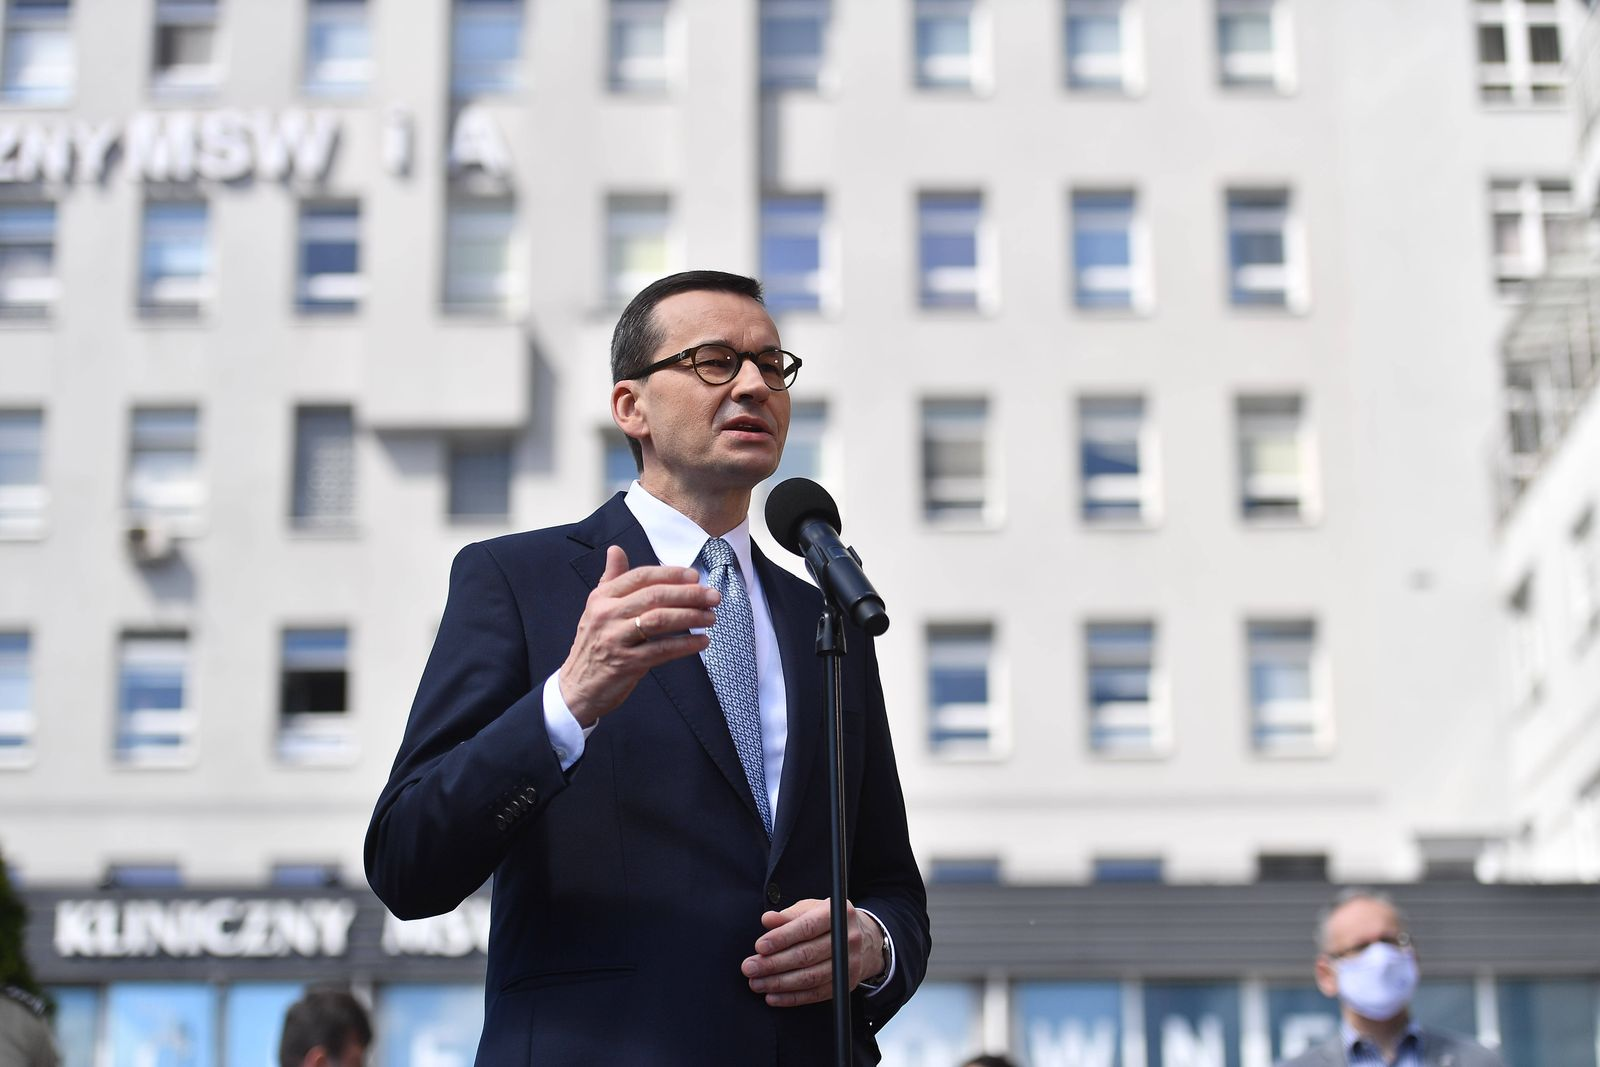 A Press conference of Prime Minister Mateusz Morawiecki, Minister of Health Lukasz Szumowski and Minister of the Interi